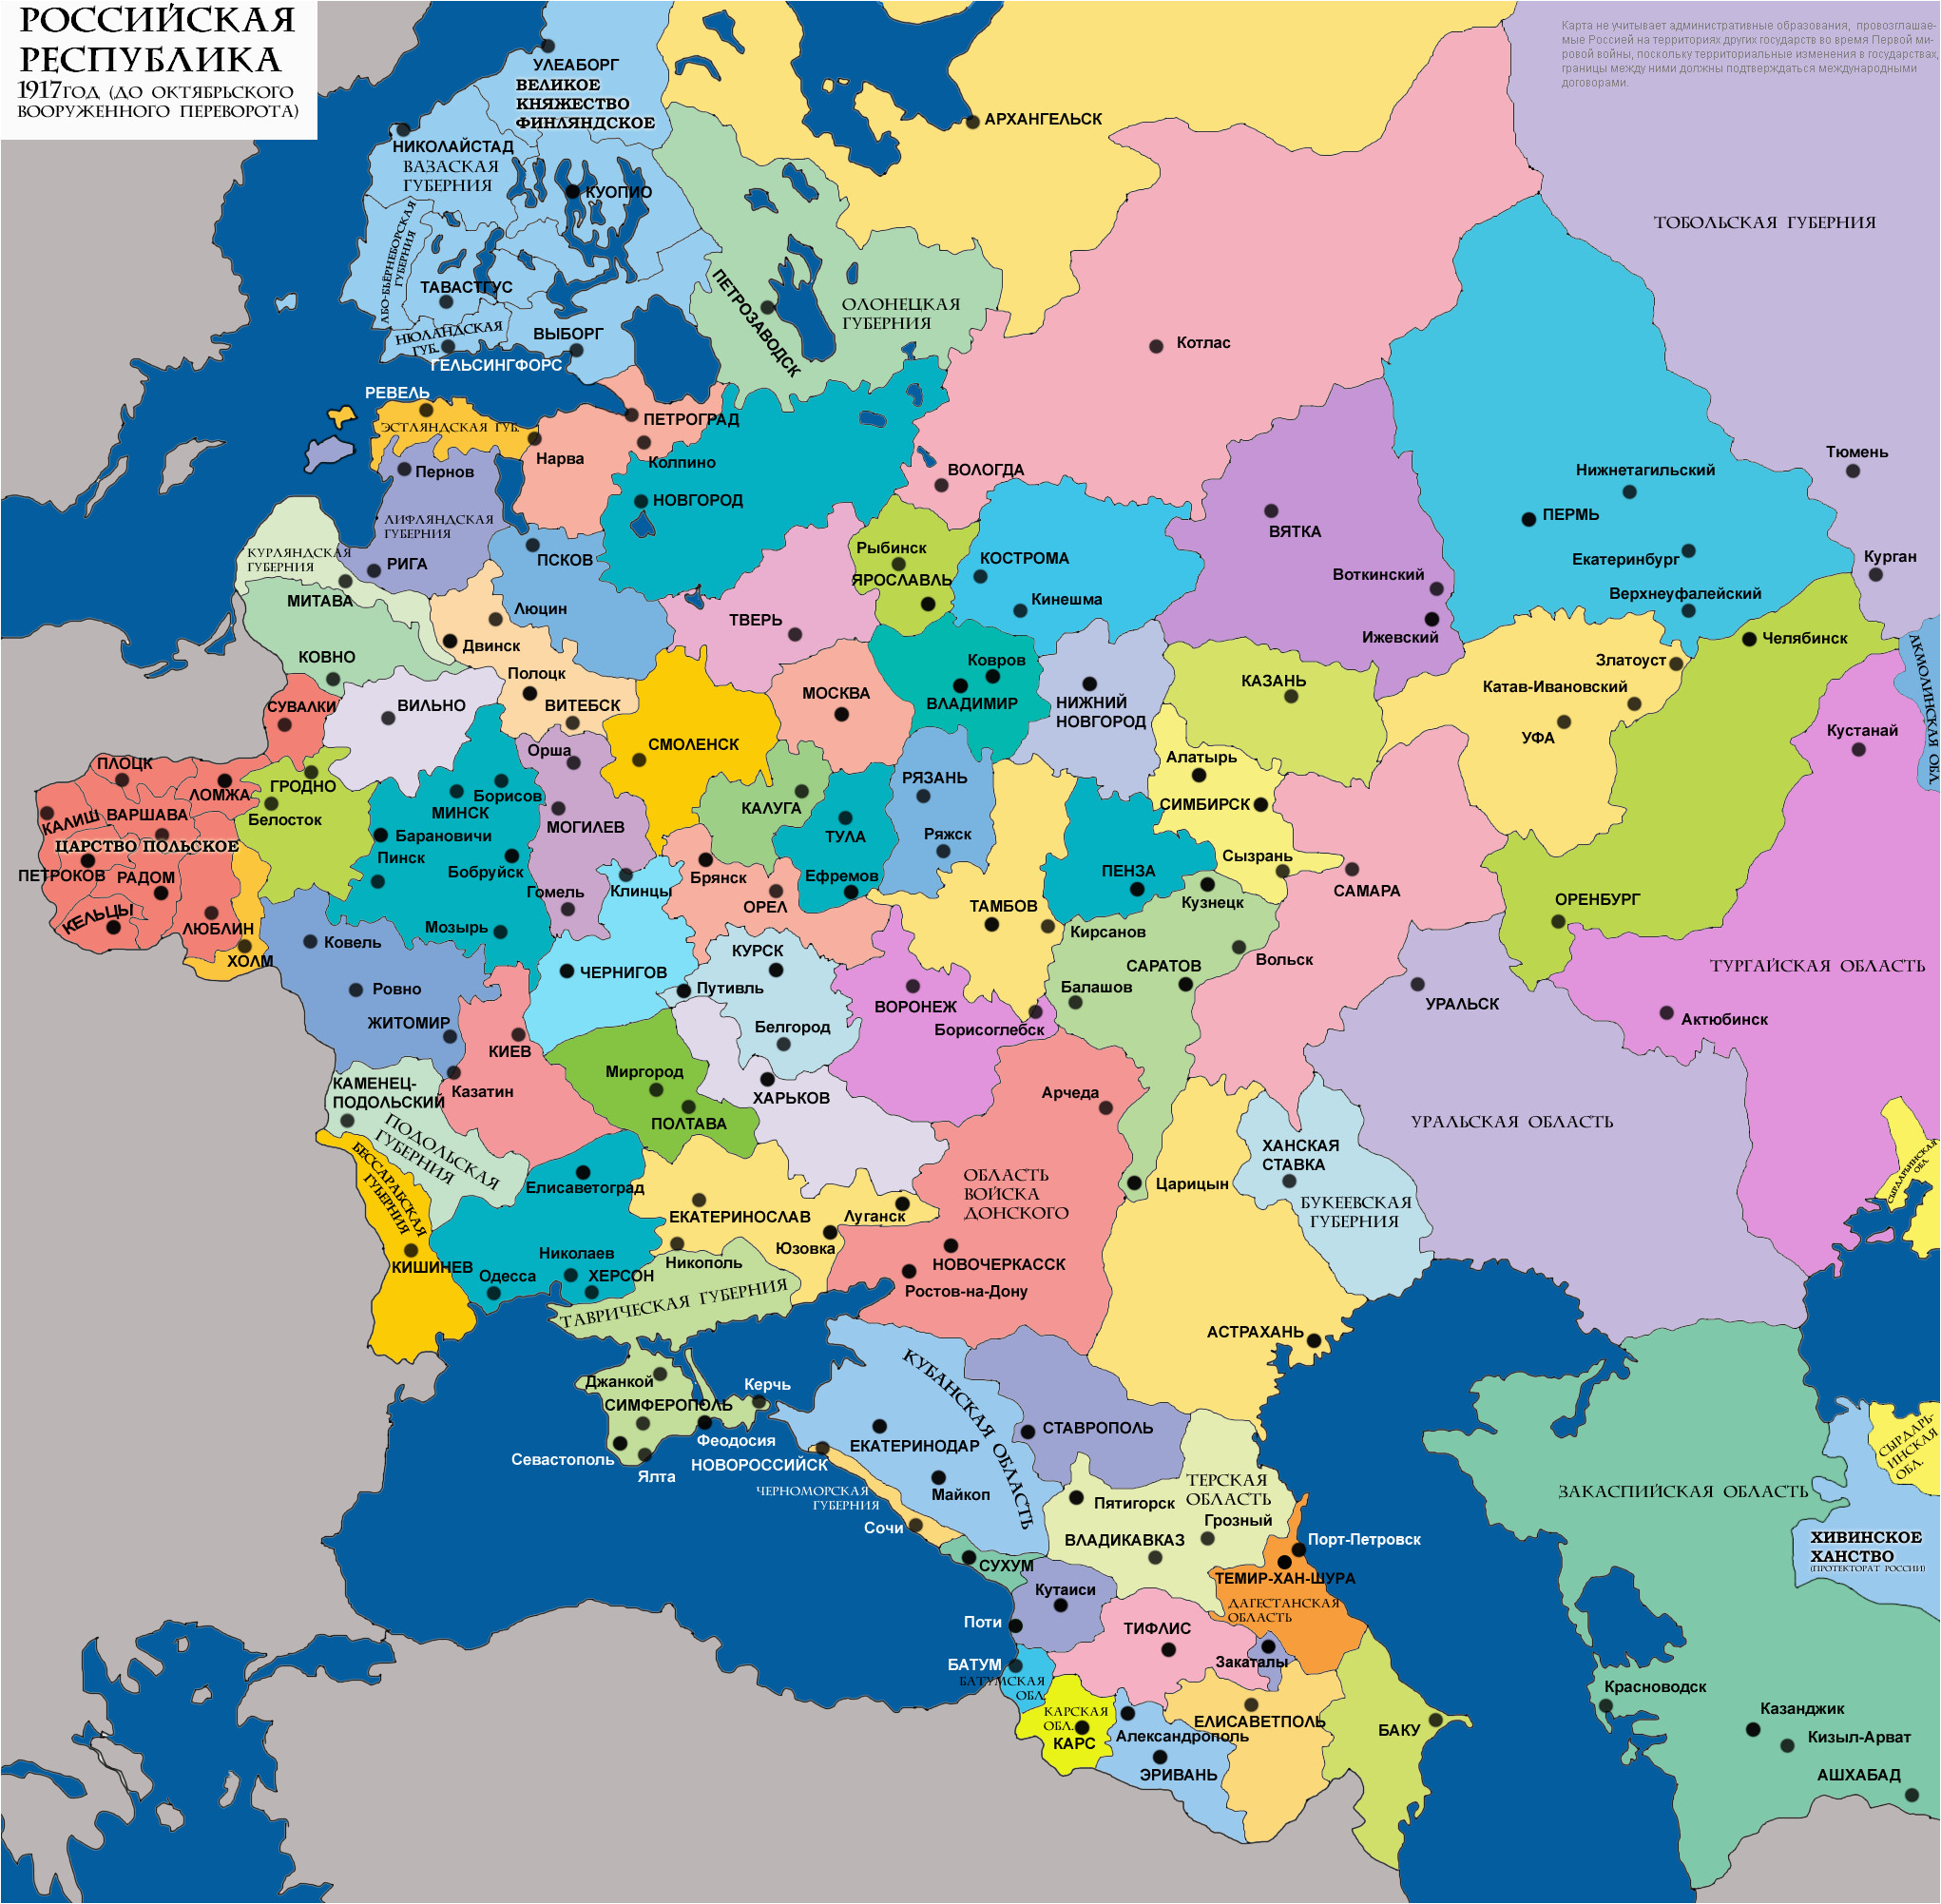 Map Of Europe In 1915 European Governates Of the Russian Empire In 1917 In